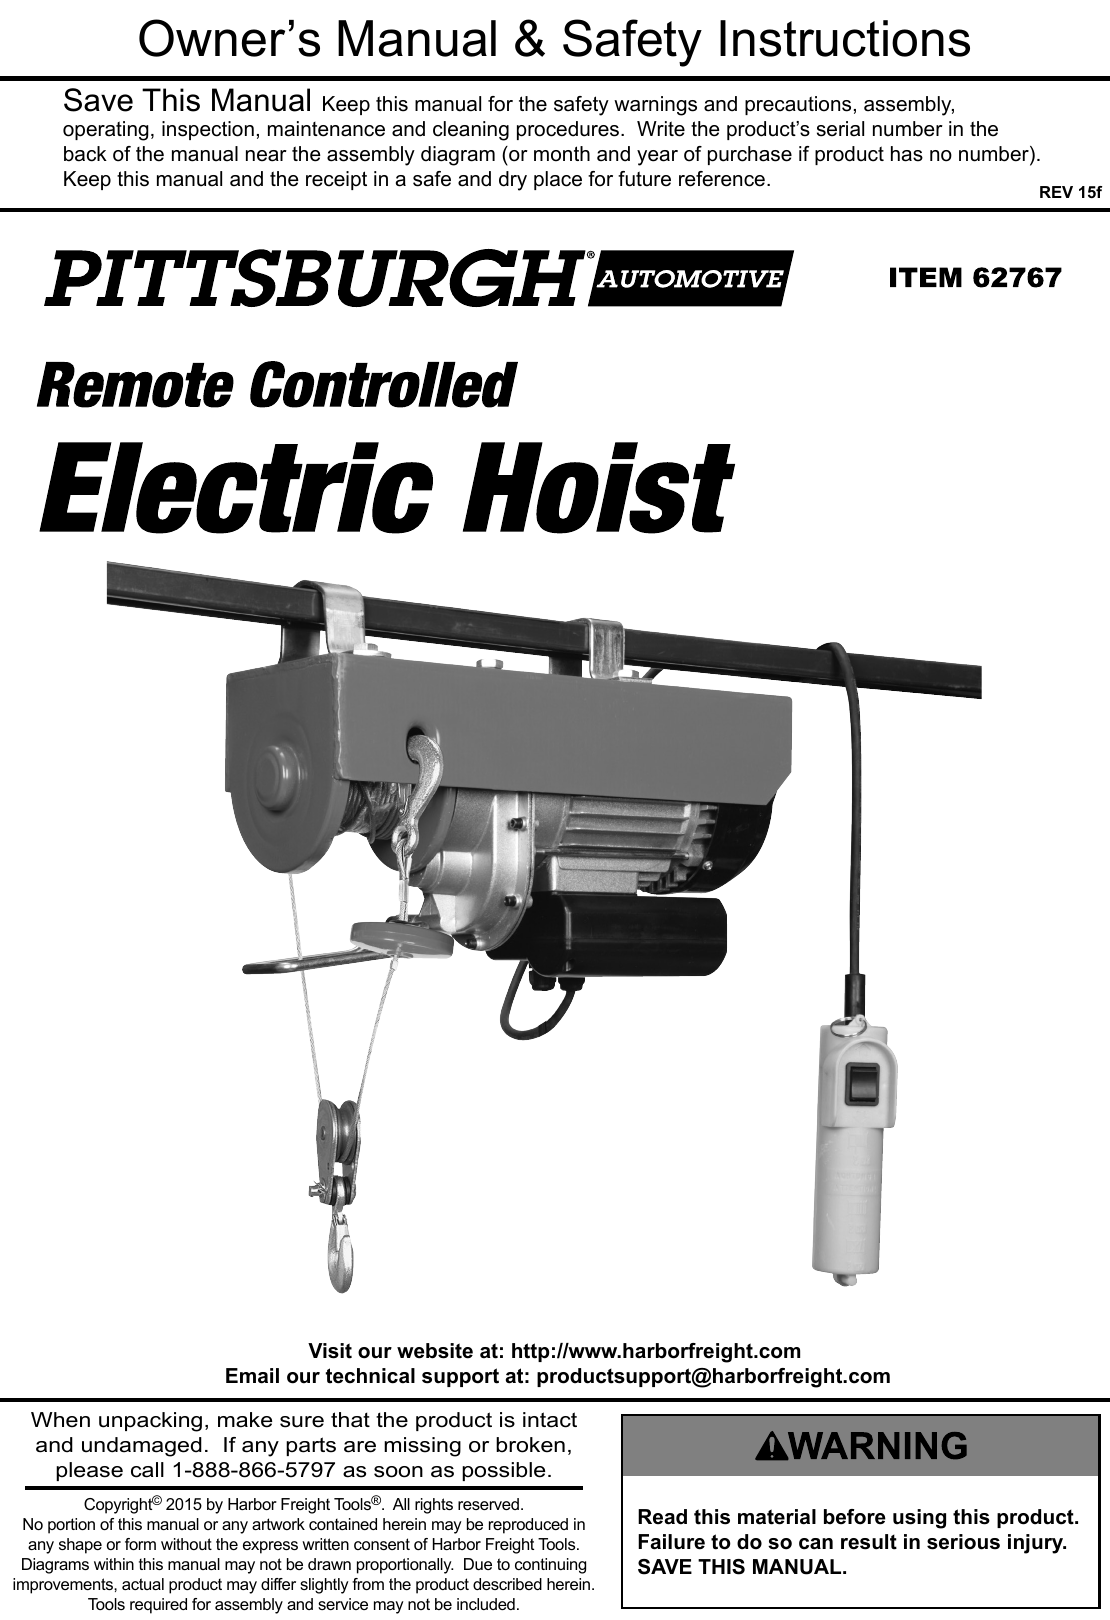 Crane Hoist Wiring Diagram Pittsburgh Up Down Remote Pendant Control on harbor freight hoist motor, harbor freight hoist repair, harbor freight hoist system,